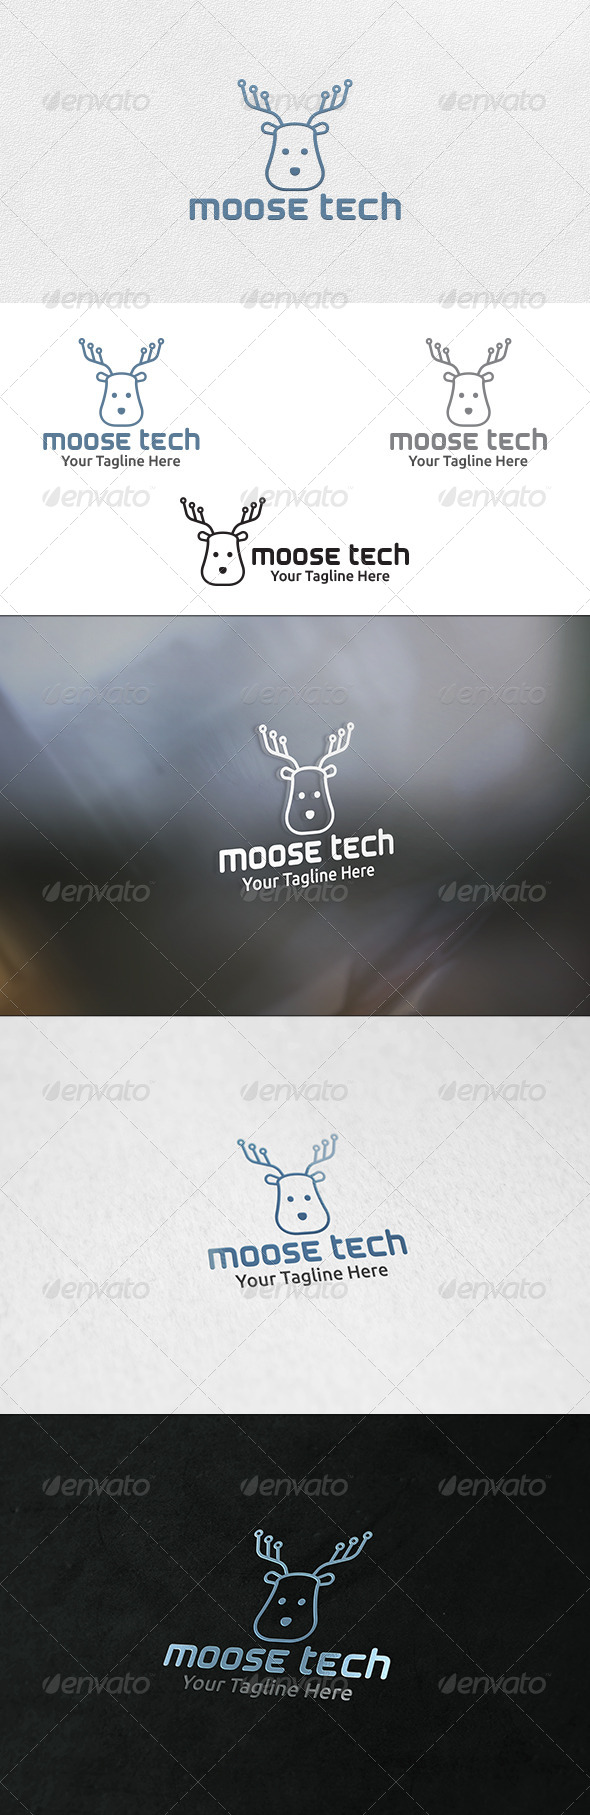 GraphicRiver Moose Tech Logo Template 6870063